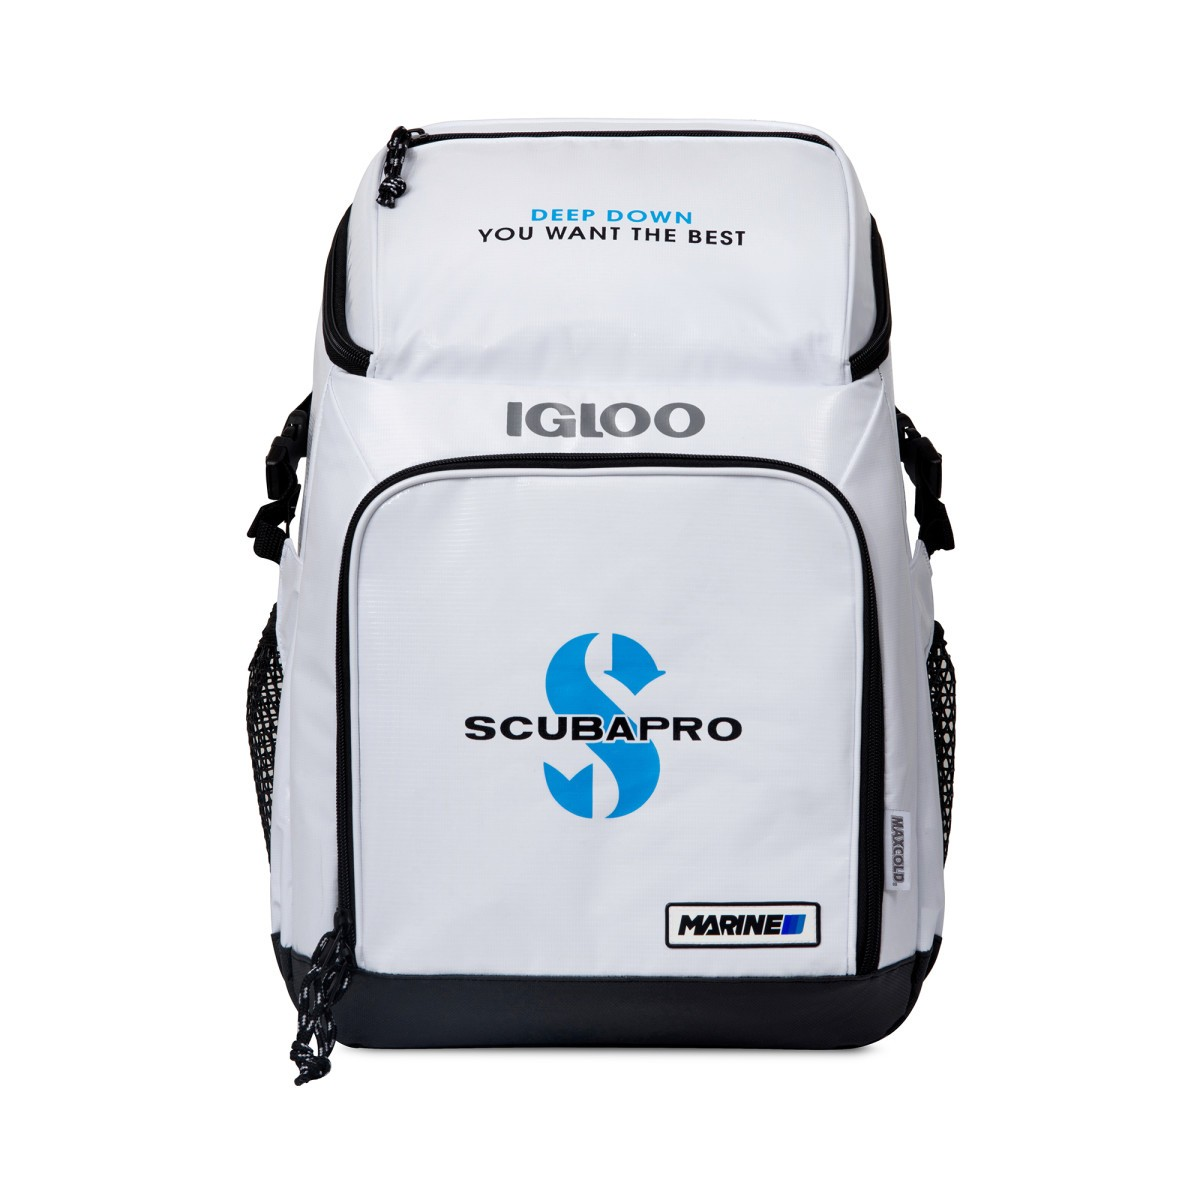 c27d334e4686 Insulated Backpack Cooler Igloo- Fenix Toulouse Handball